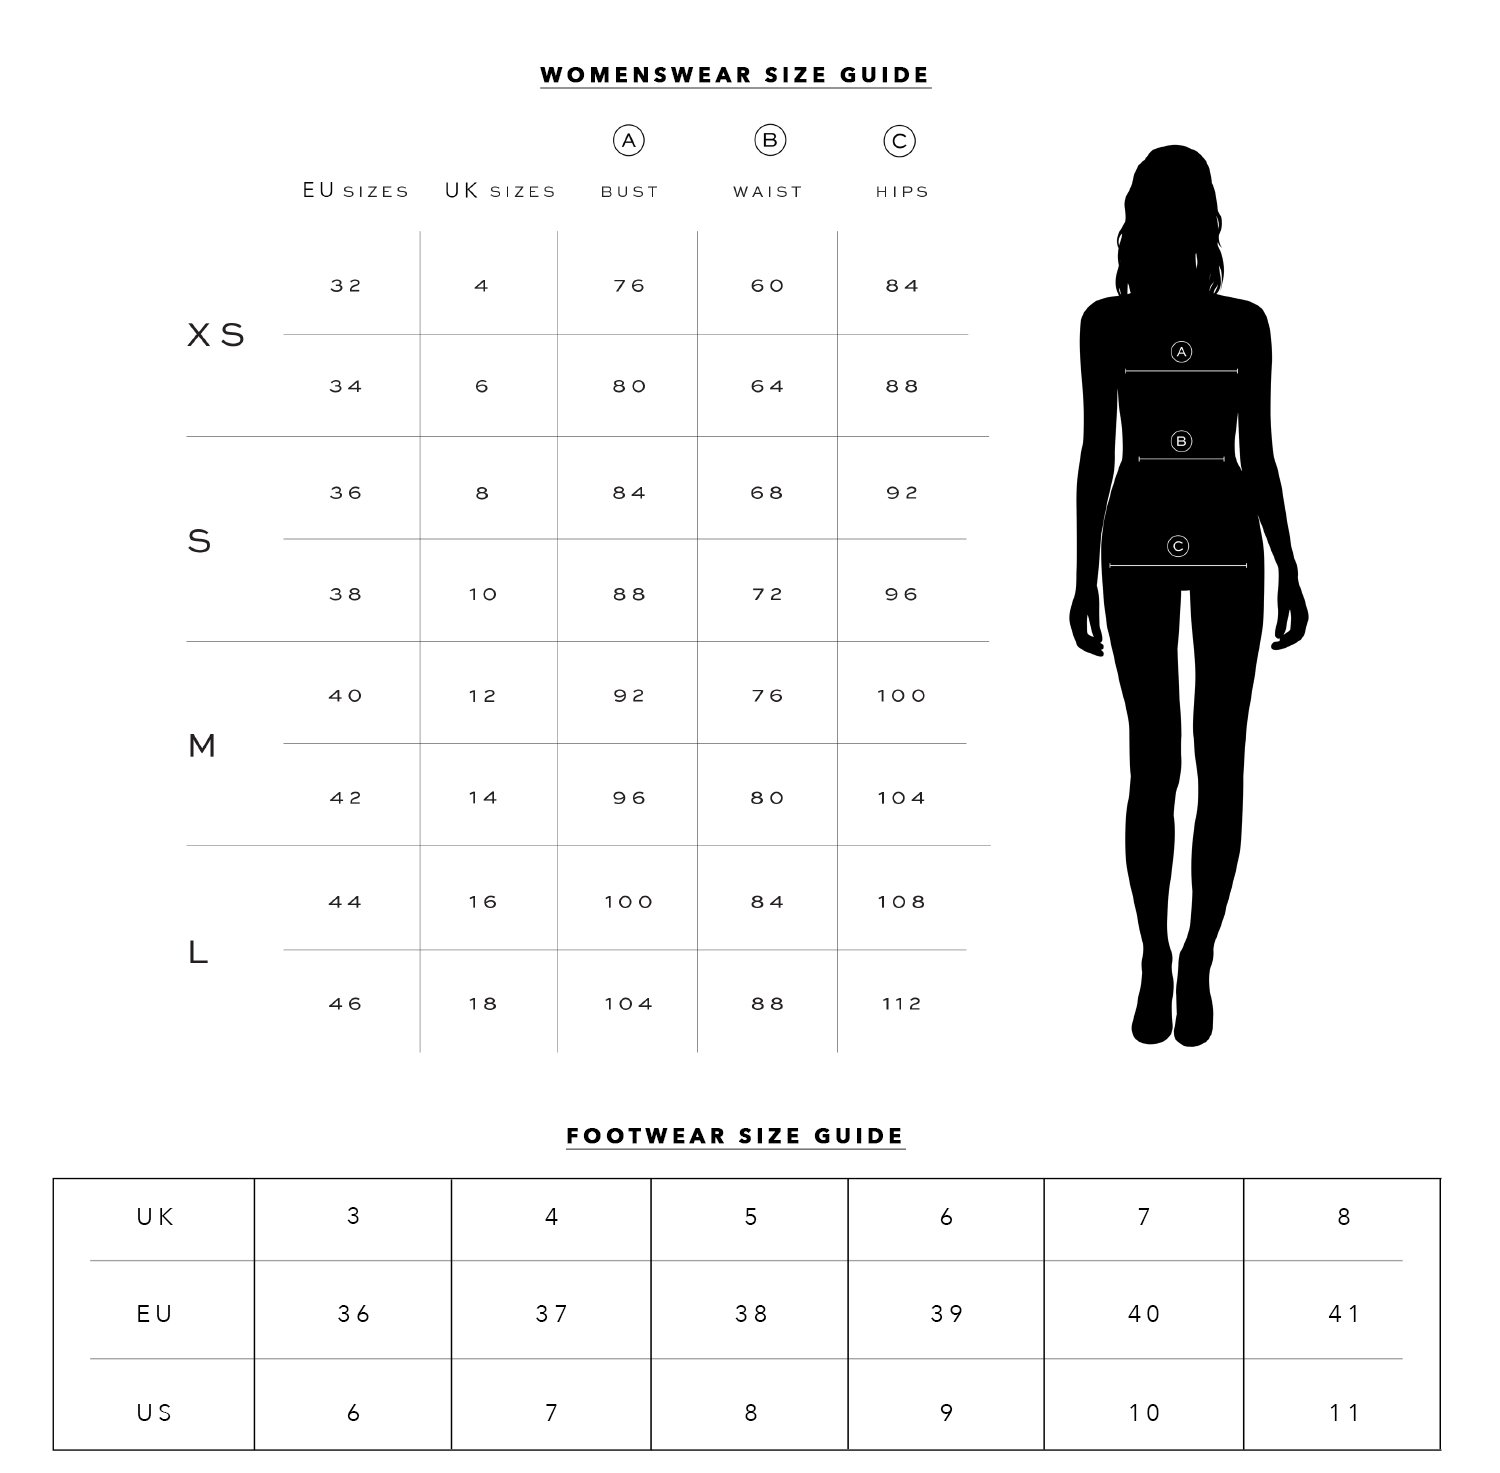 Image Size Guide